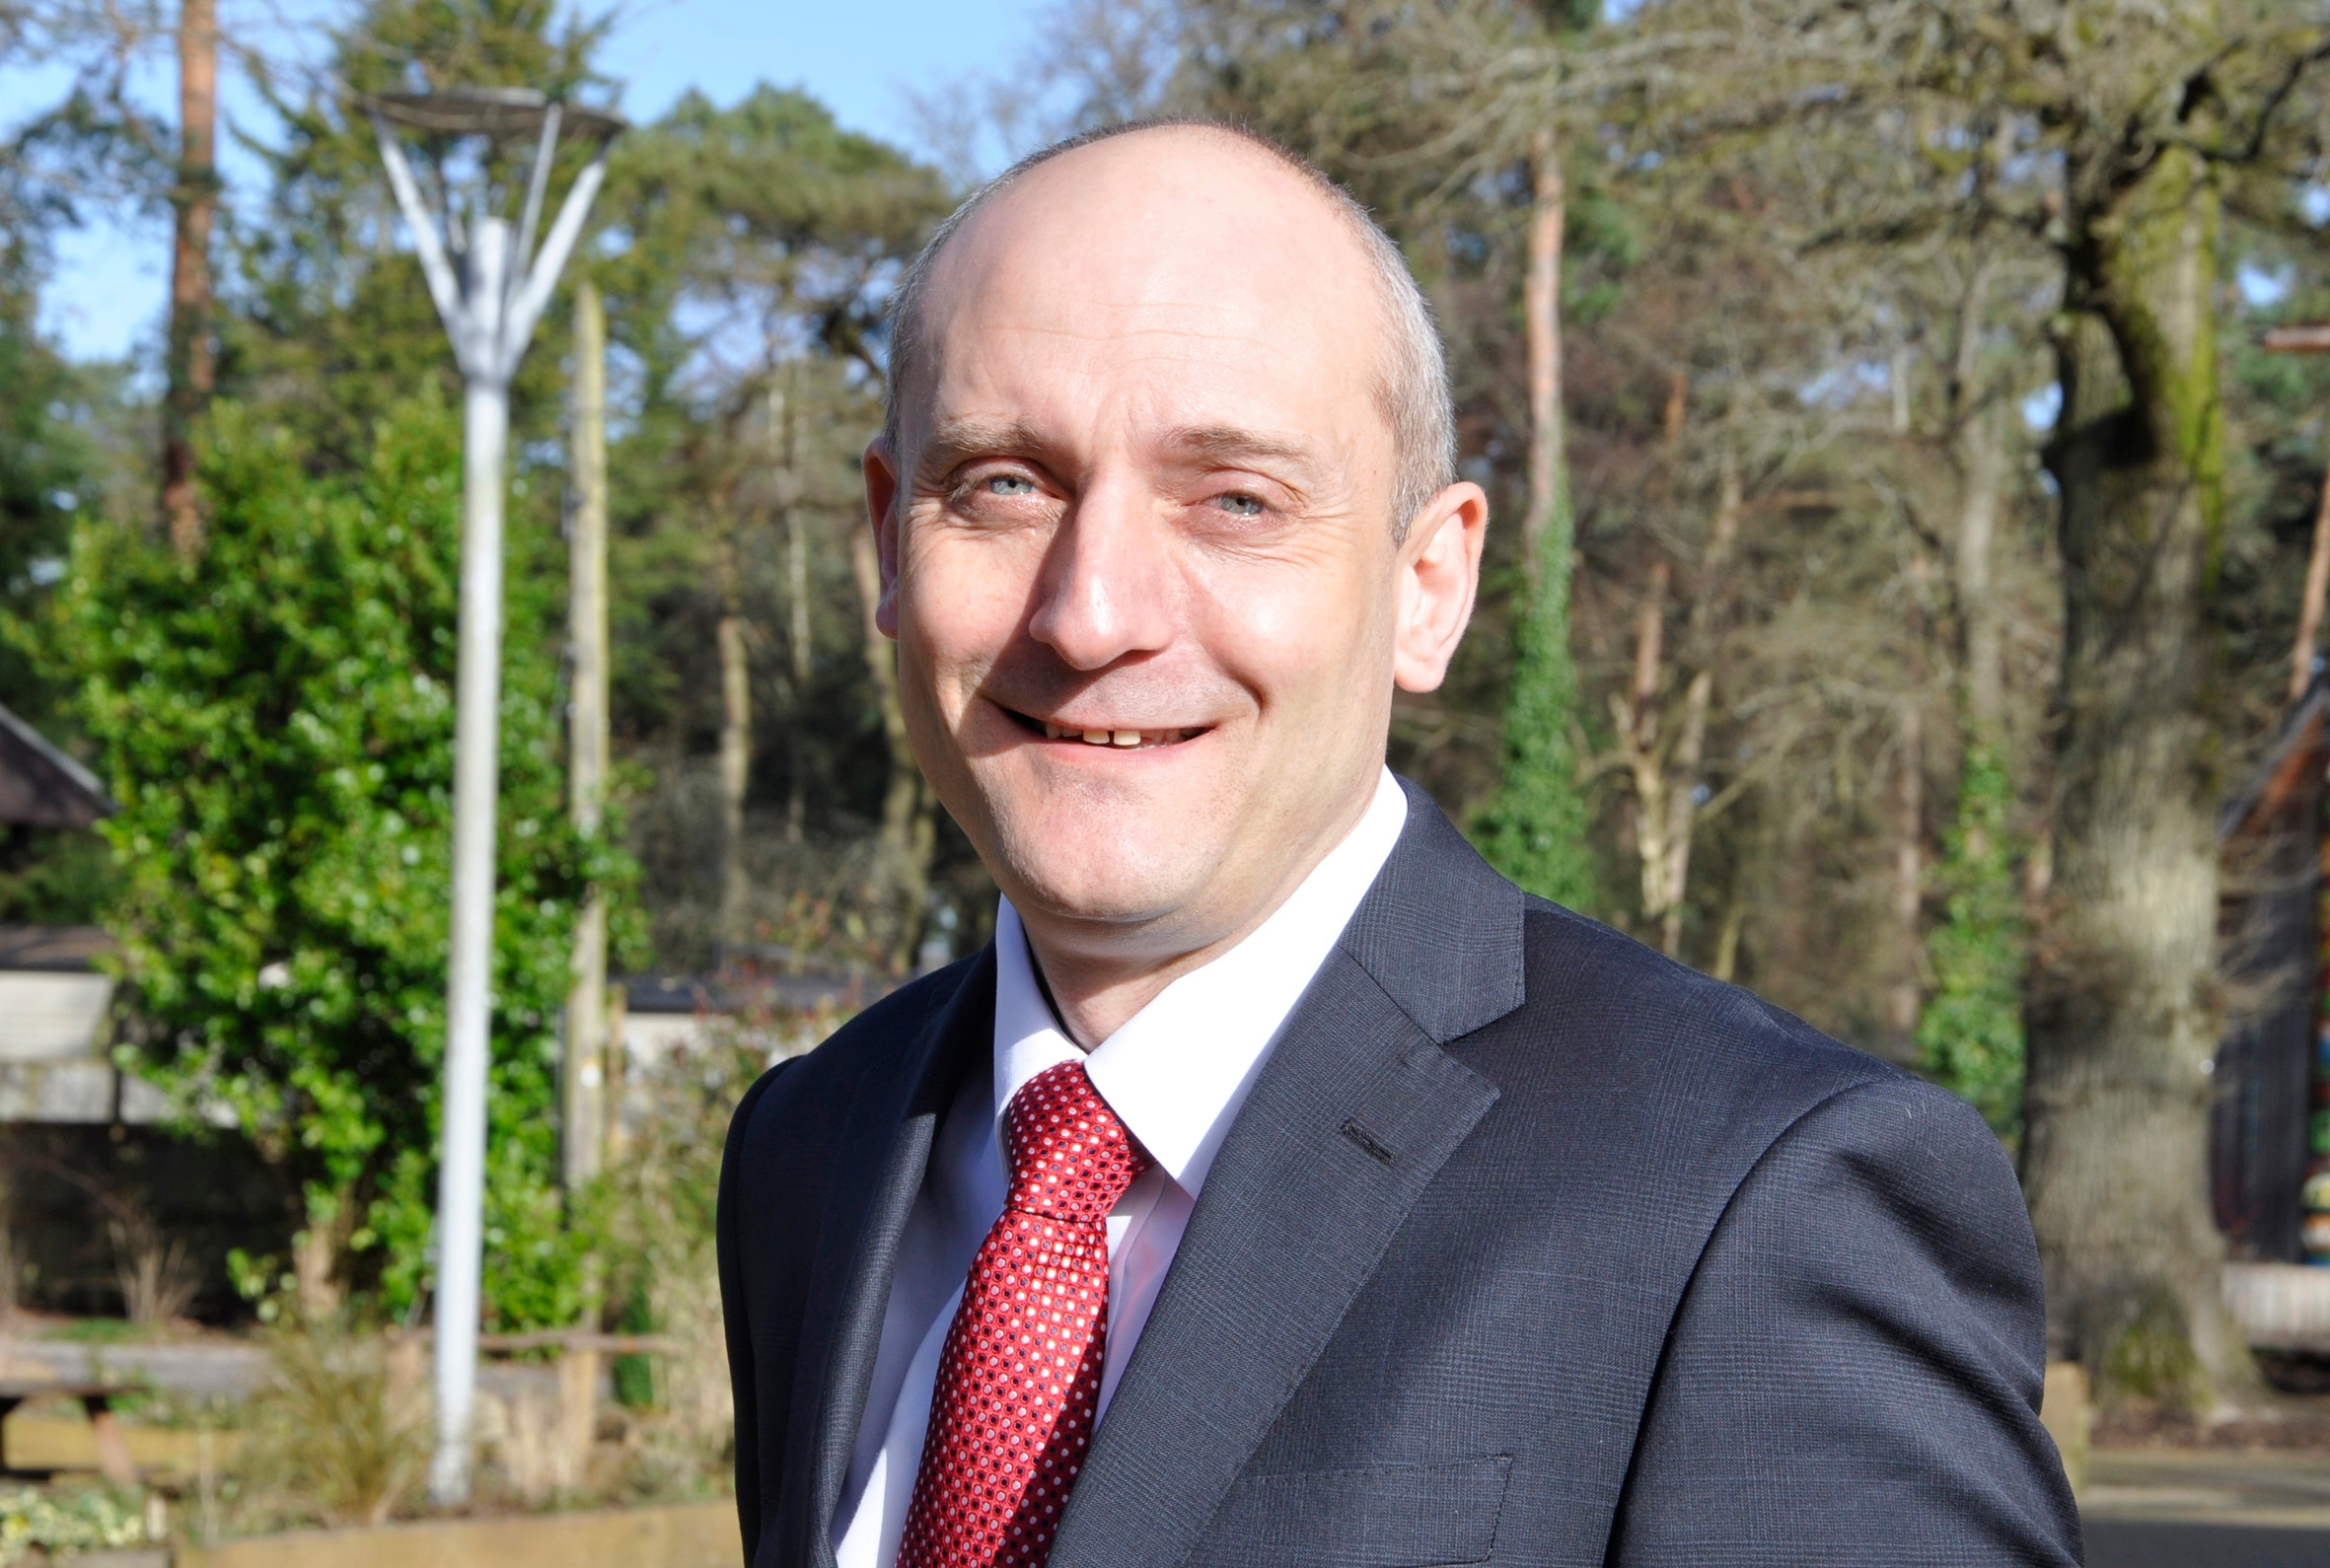 Mark Baulch will work from Hampshire Chamber of Commerce's Fareham Office